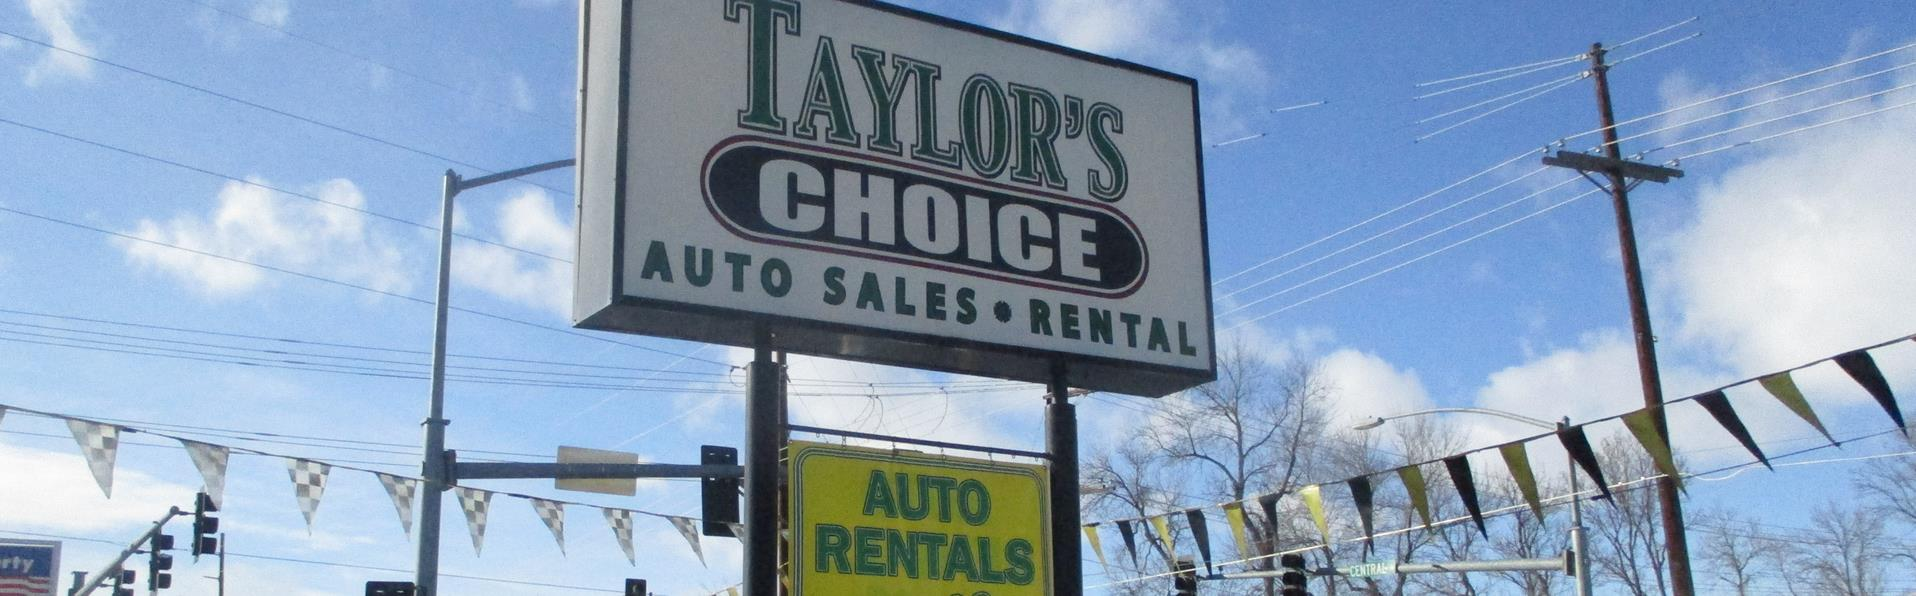 Used Car Dealerships In Billings Mt >> Used Cars Billings MT | Used Cars & Trucks MT | Taylor's Choice Auto Plaza